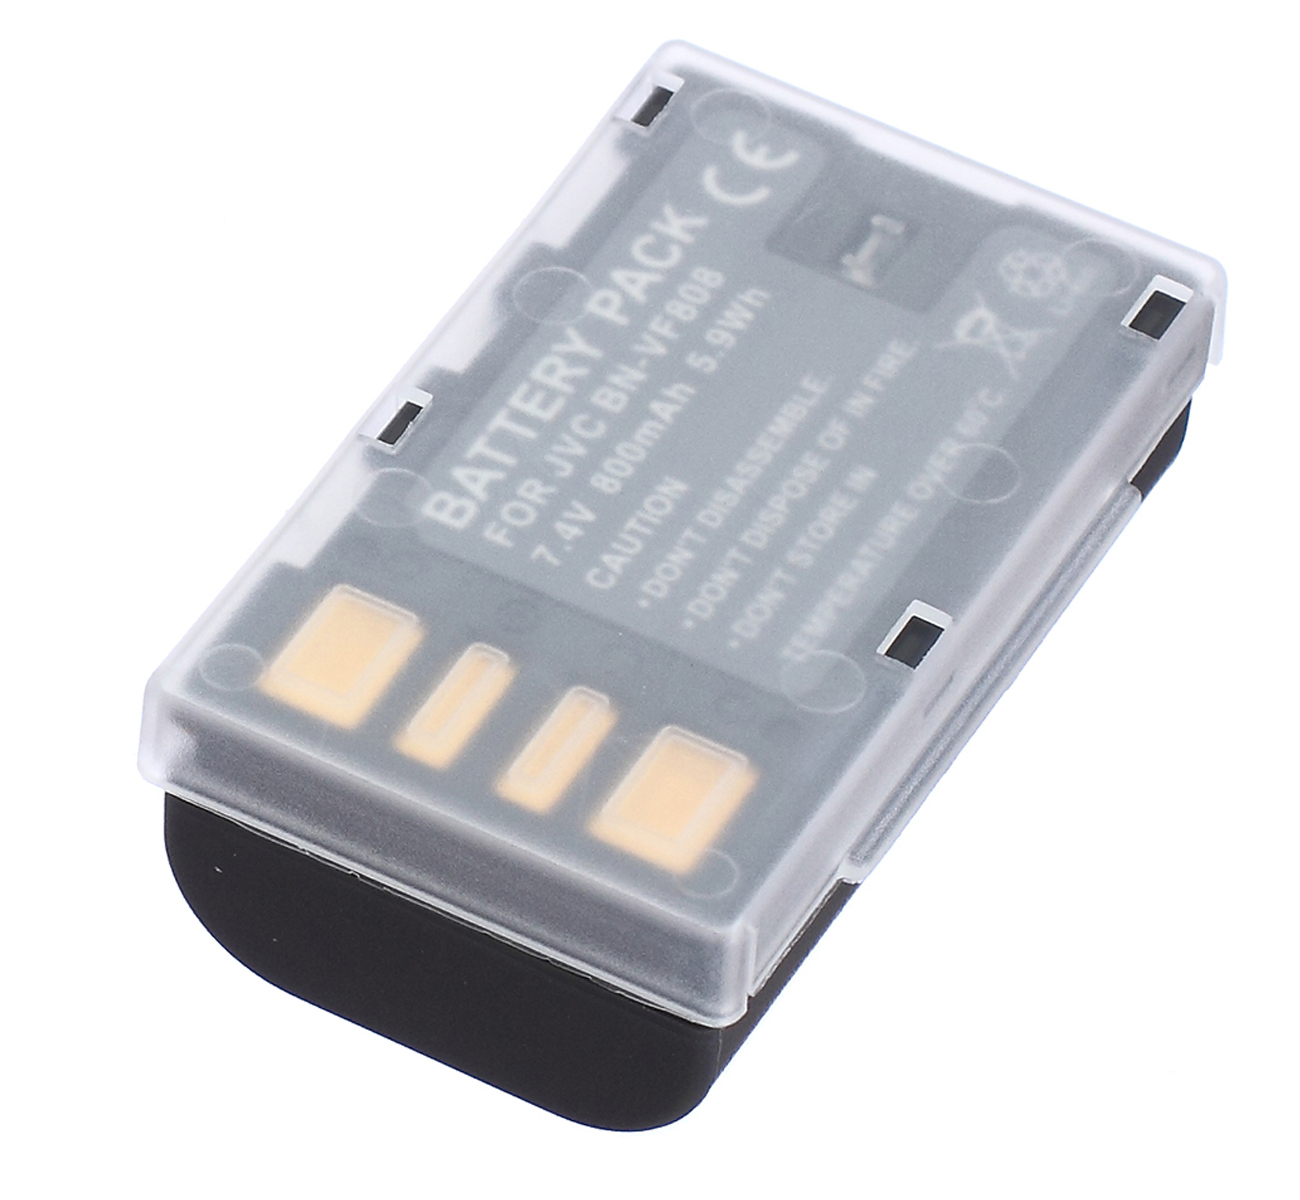 GZ-MG335U GZ-MG340 GZ-MG335 GZ-MG330U GZ-MG340U Camcorder LCD USB Battery Charger for JVC Everio GZ-MG330